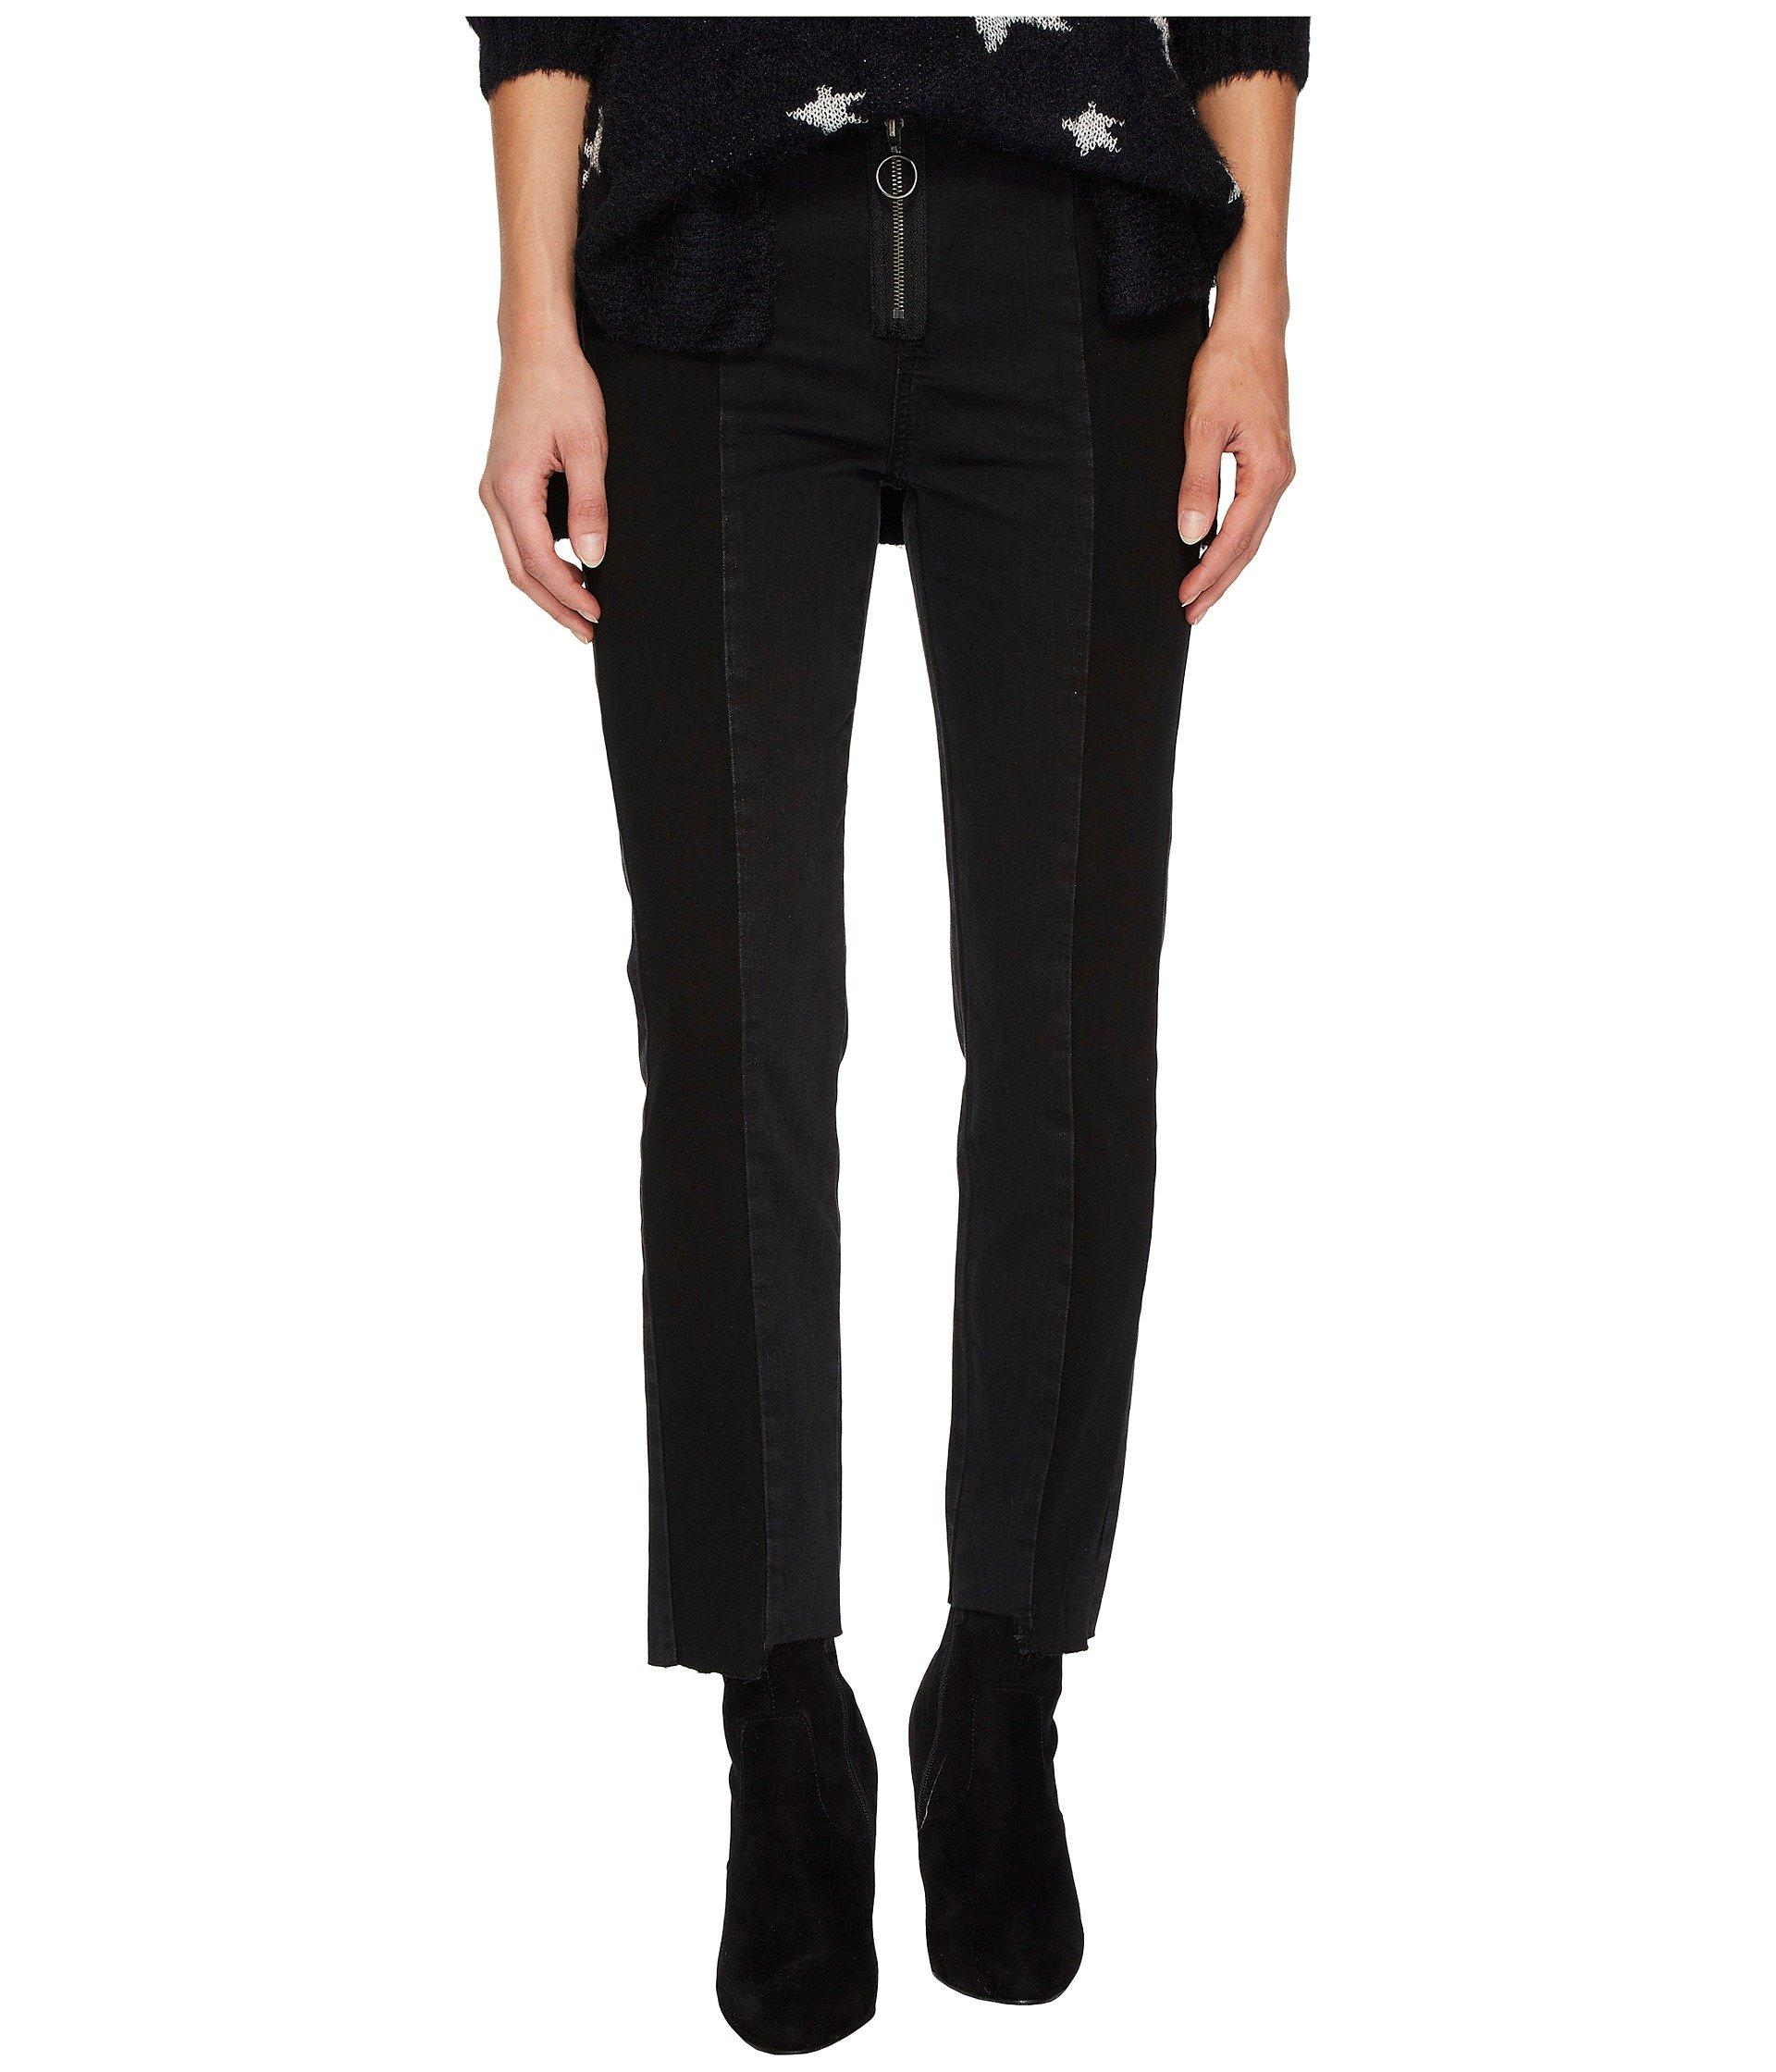 09e05162d1 Romeo & Juliet Couture Two-Tone Ring-Zip Ankle Jeans In Black | ModeSens